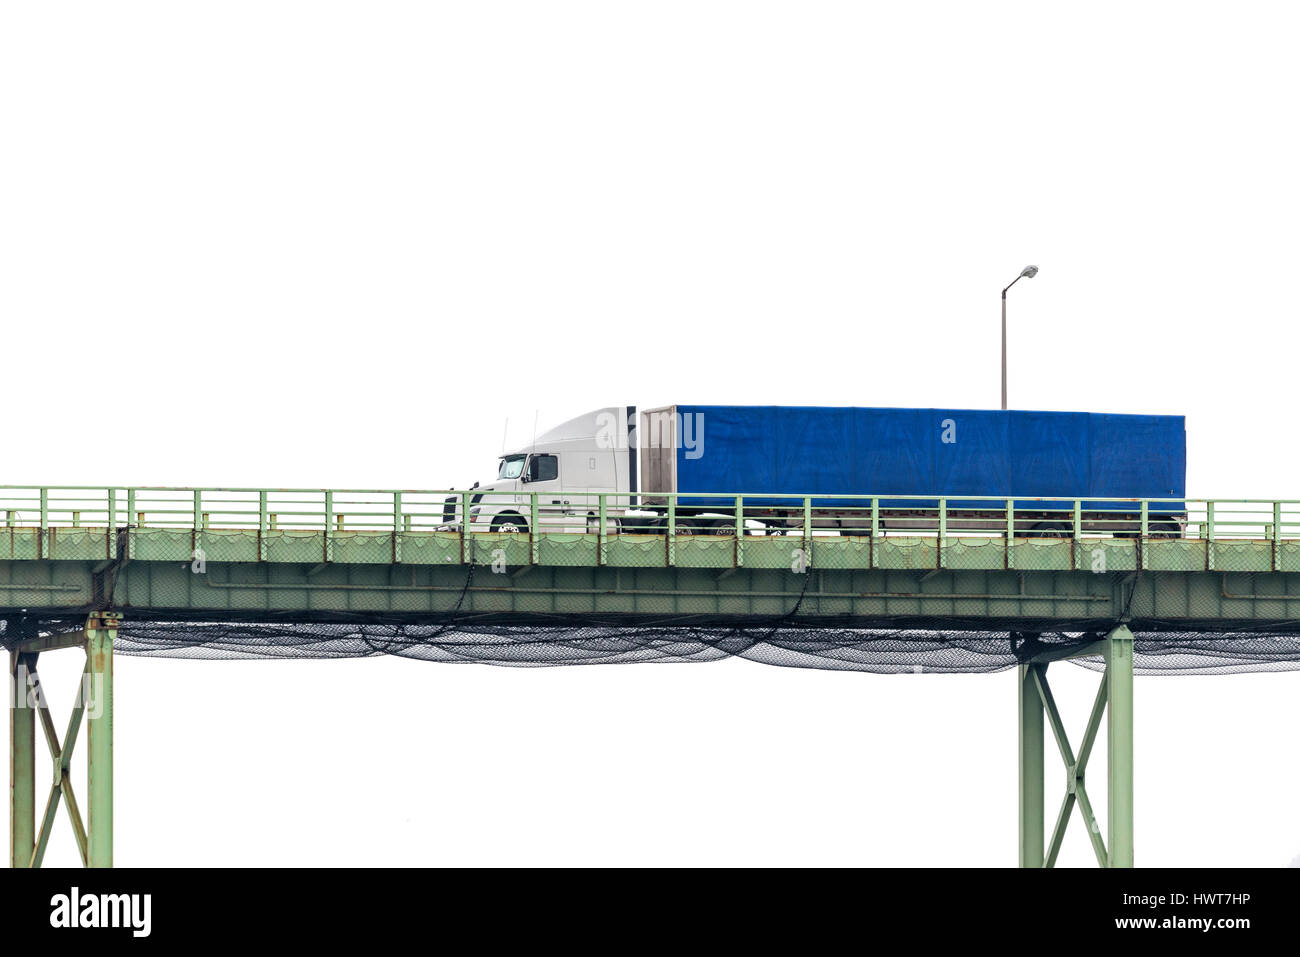 An eighteen-wheeler crosses a bridge in front of a white cloudy sky with plenty of copy space above and below. - Stock Image